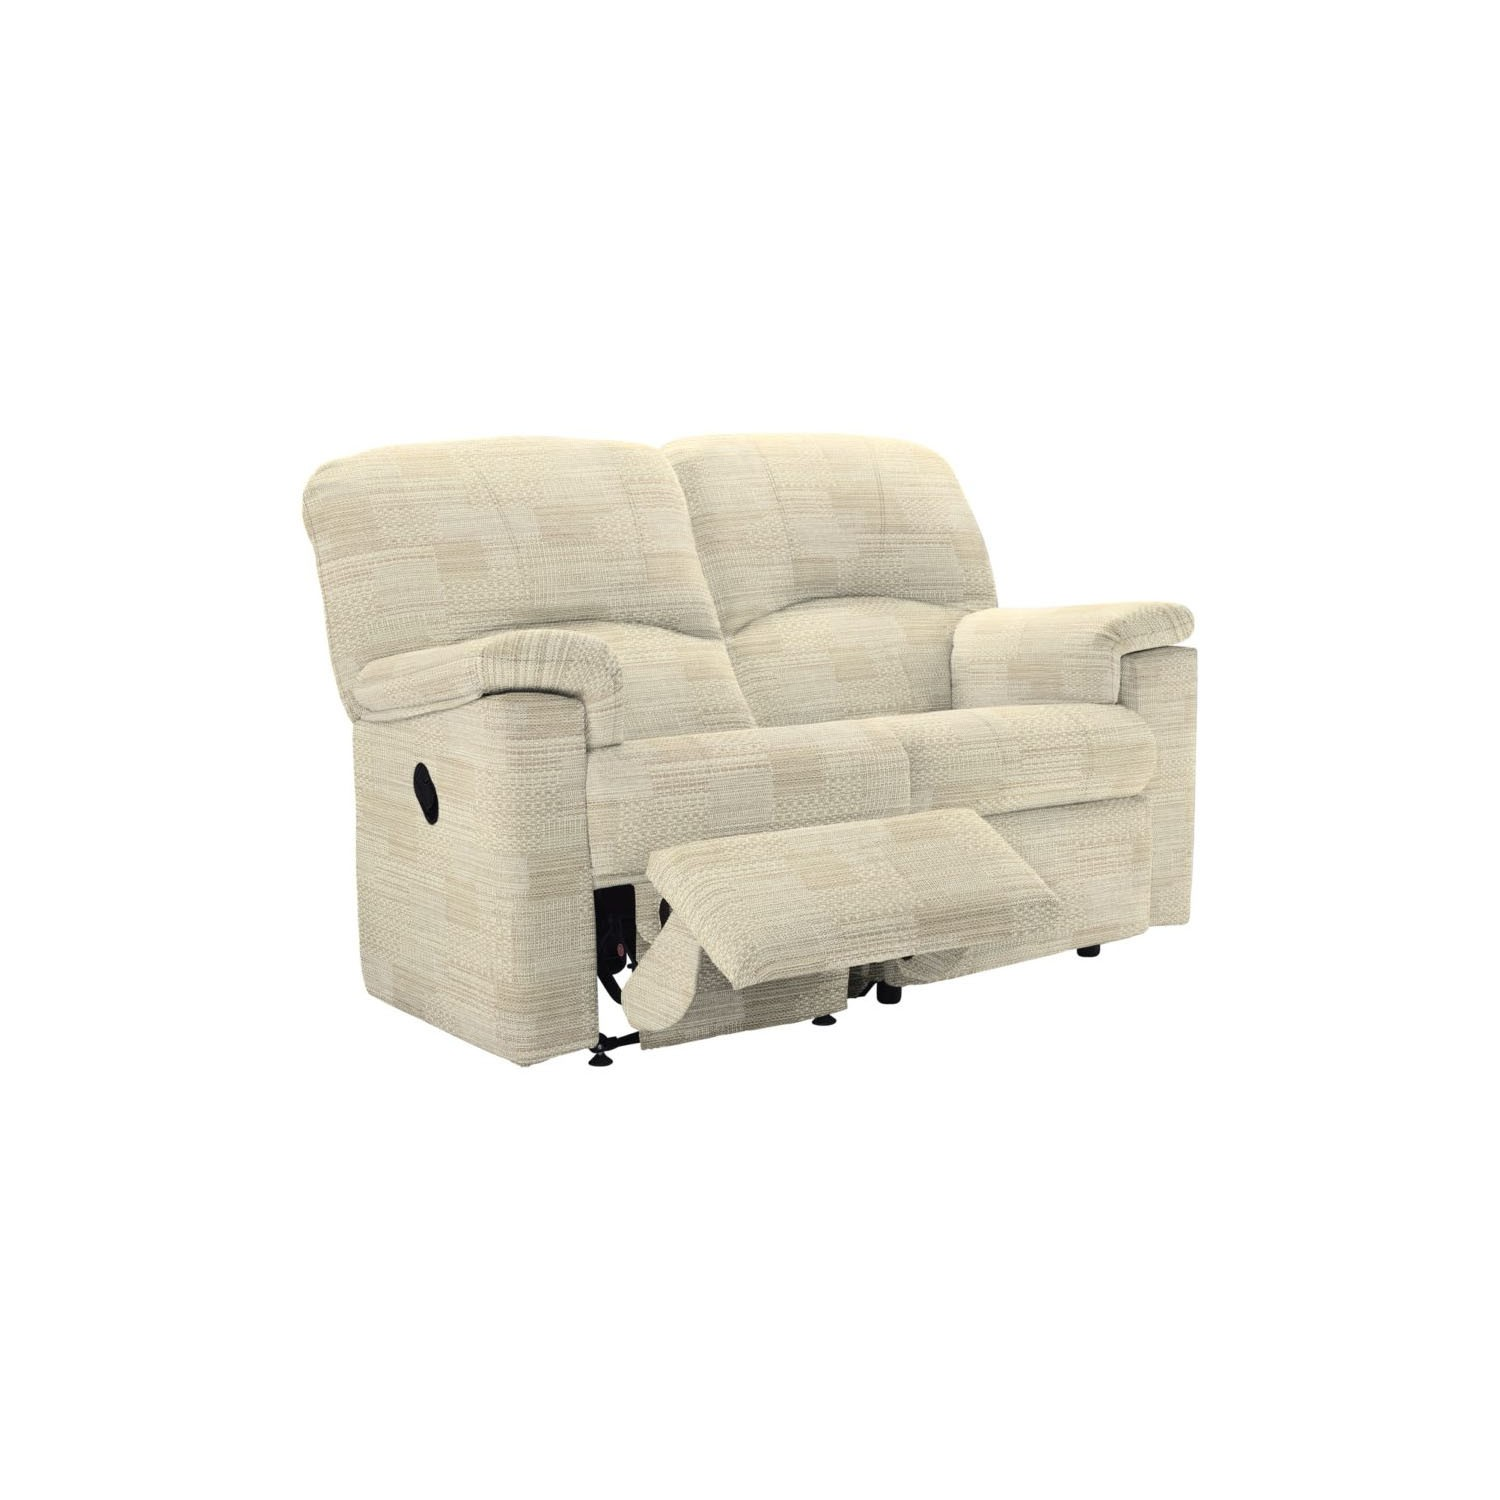 G Plan Chloe 2 Seater Double Manual Recliner Fabric Sofa L